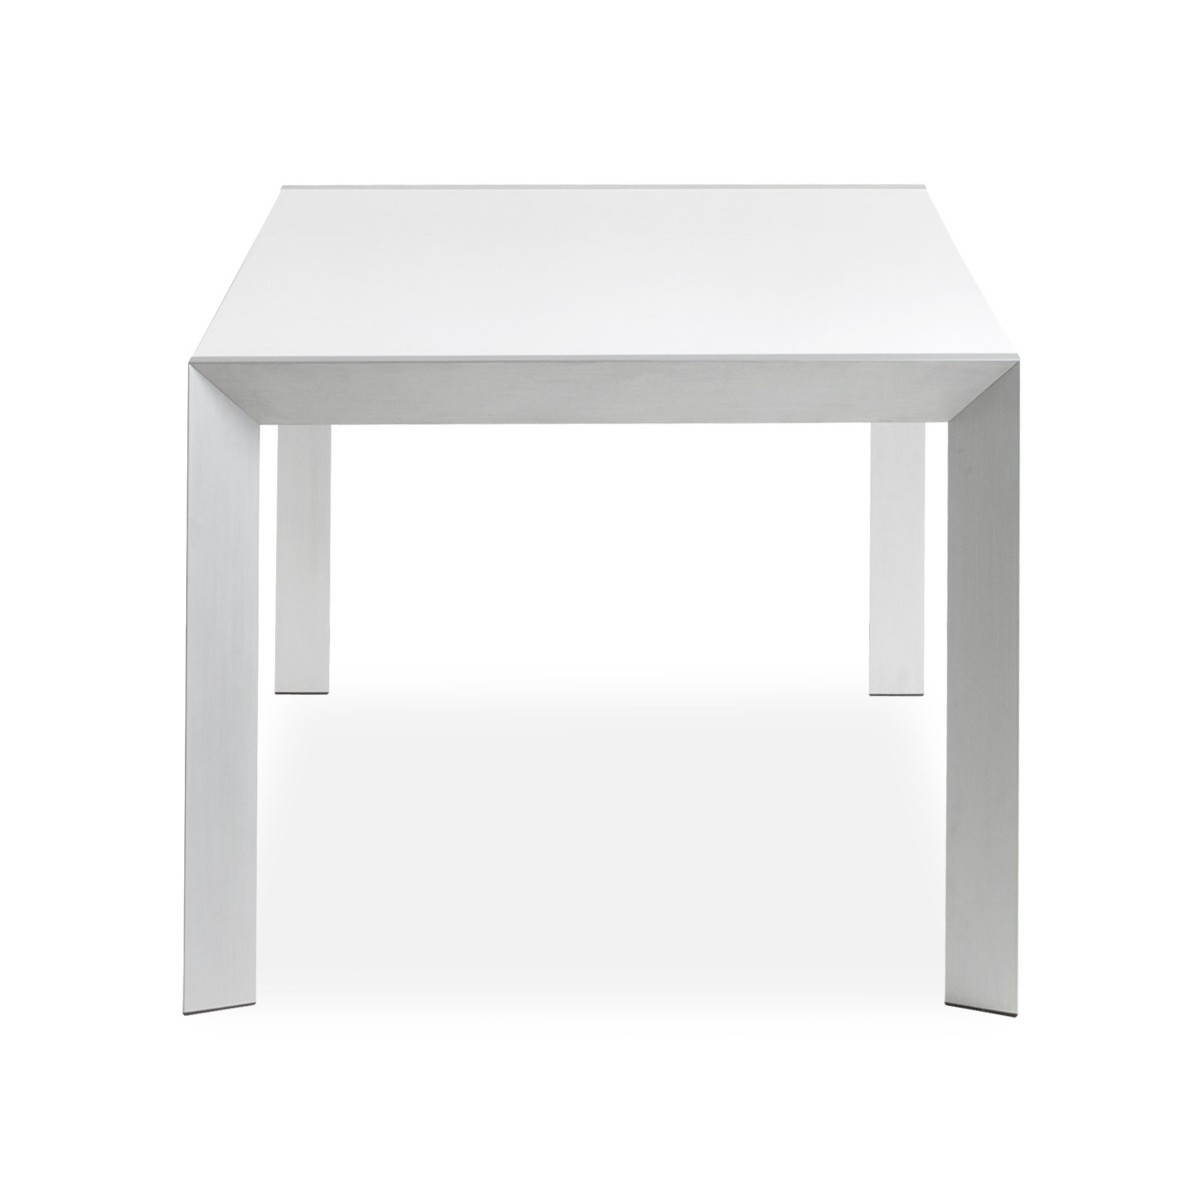 Table basse design bois blanc for Table basse scandinave blanc laque